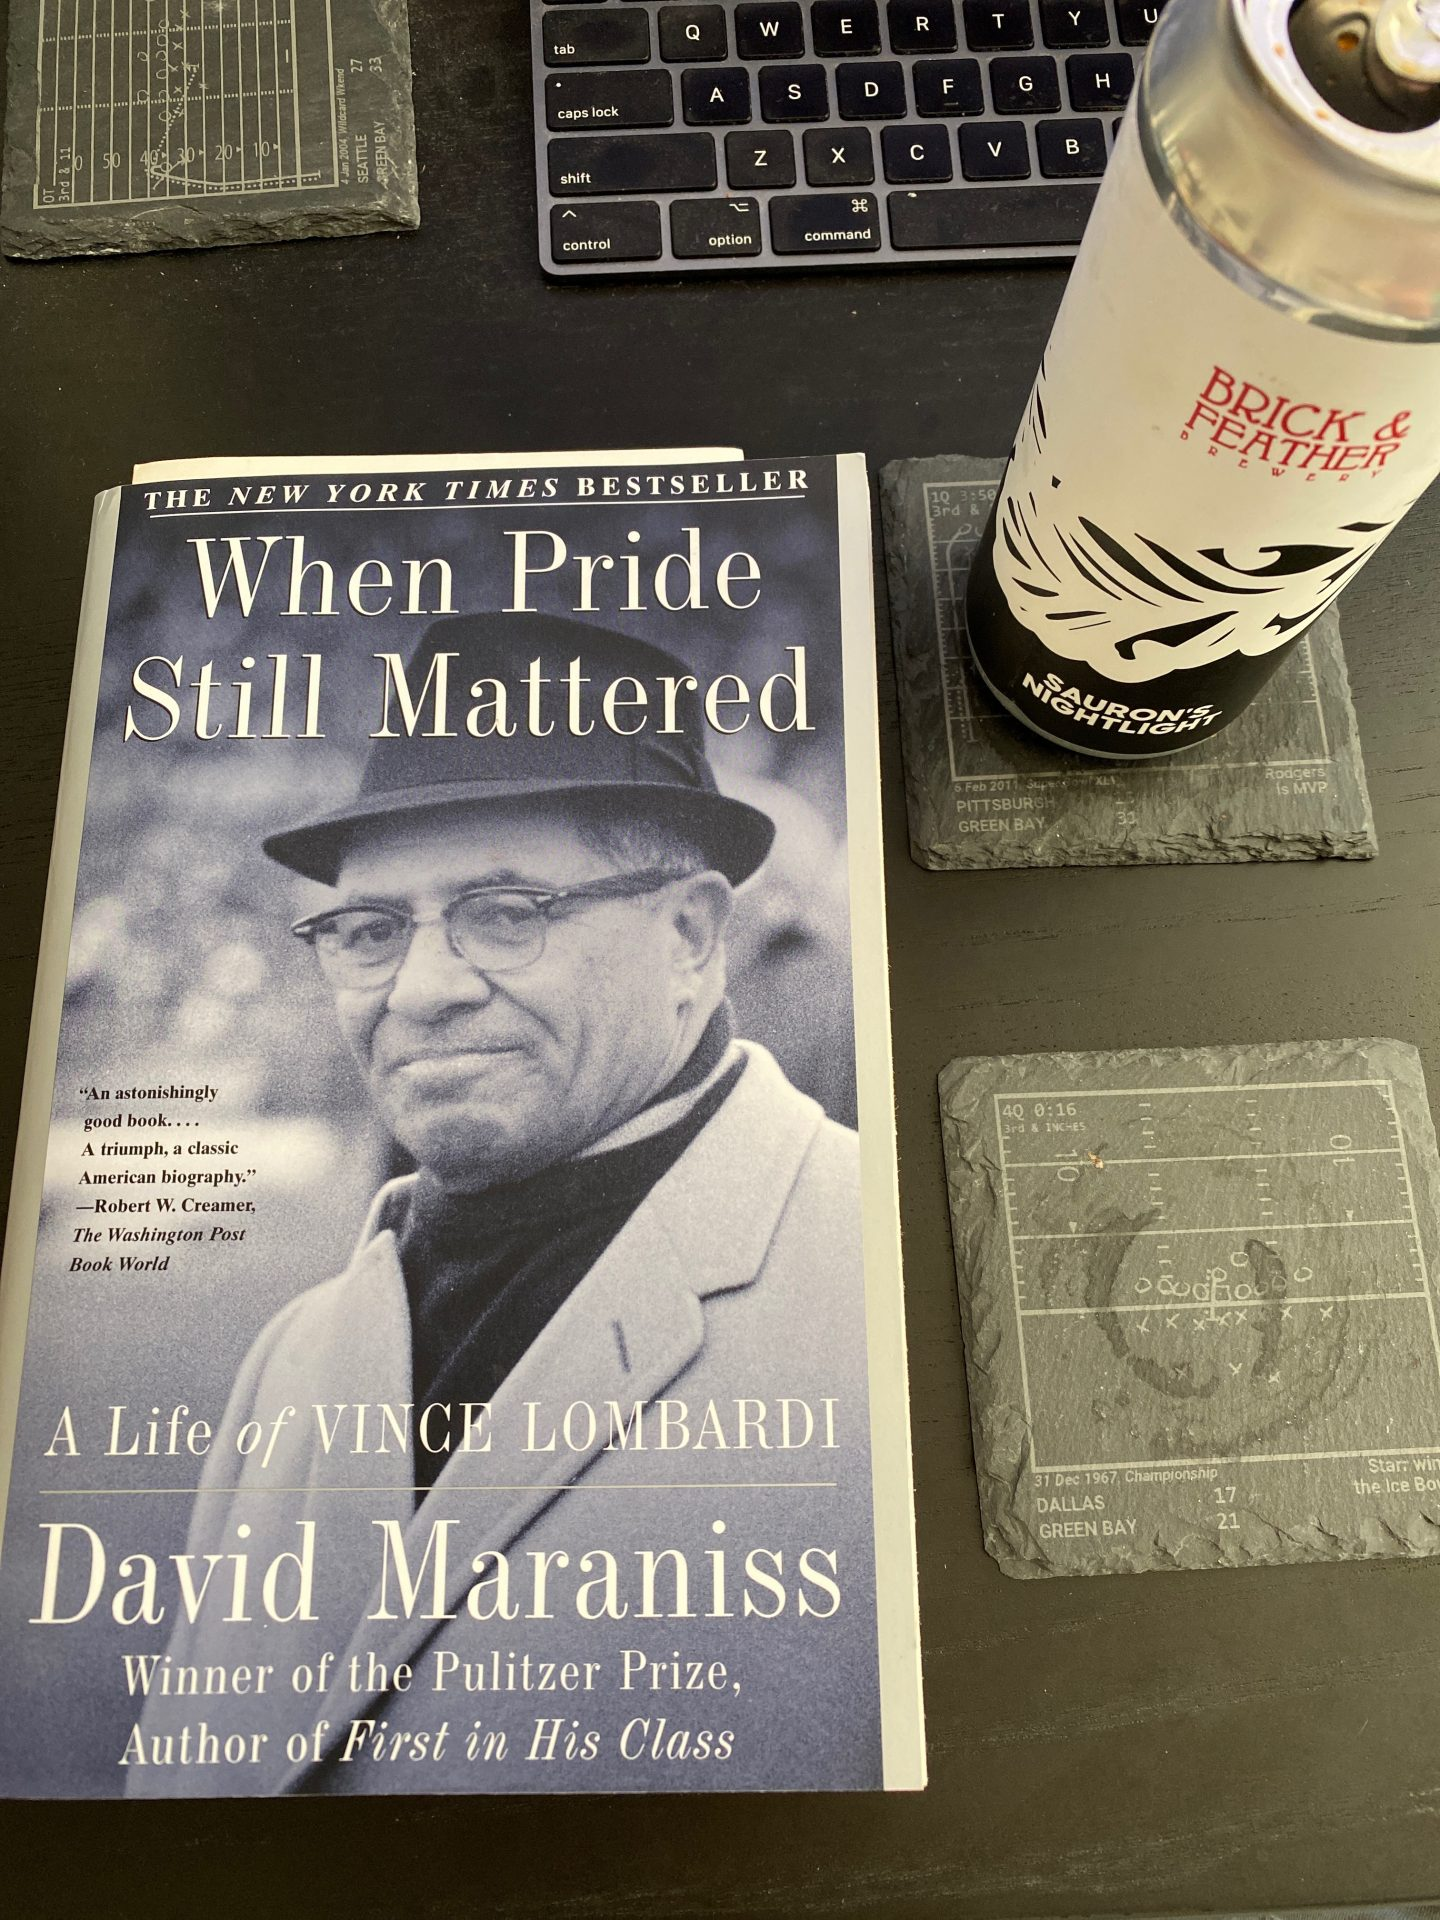 When Pride Still Mattered. A Life of Vince Lombardi by David Maraniss